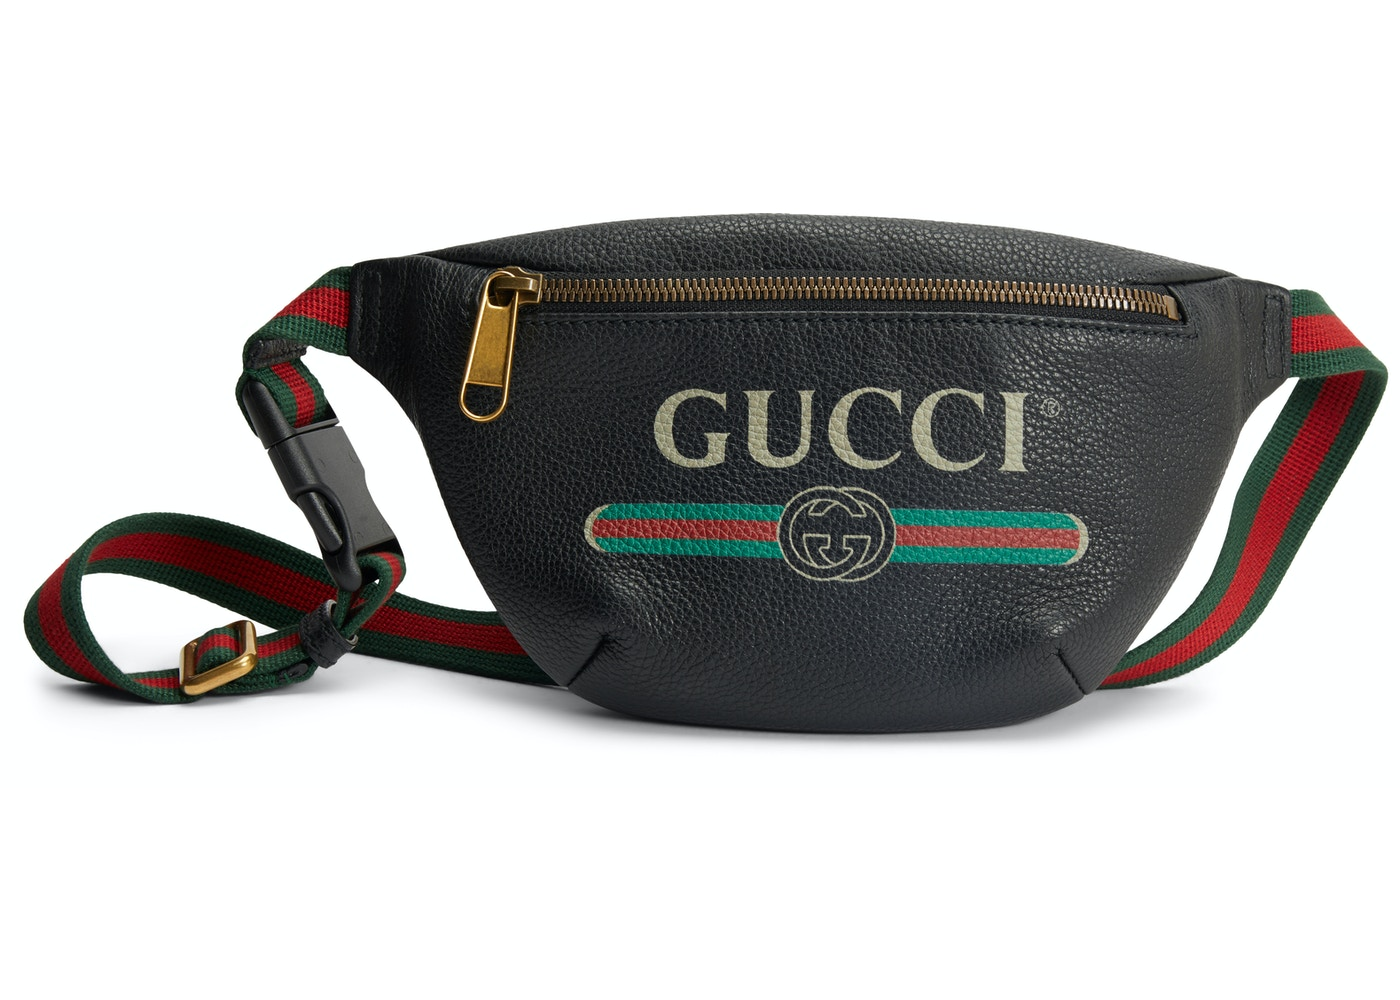 ff7819715 Gucci Print Belt Bag Vintage Logo Small (29.5 - 41 in.) Black